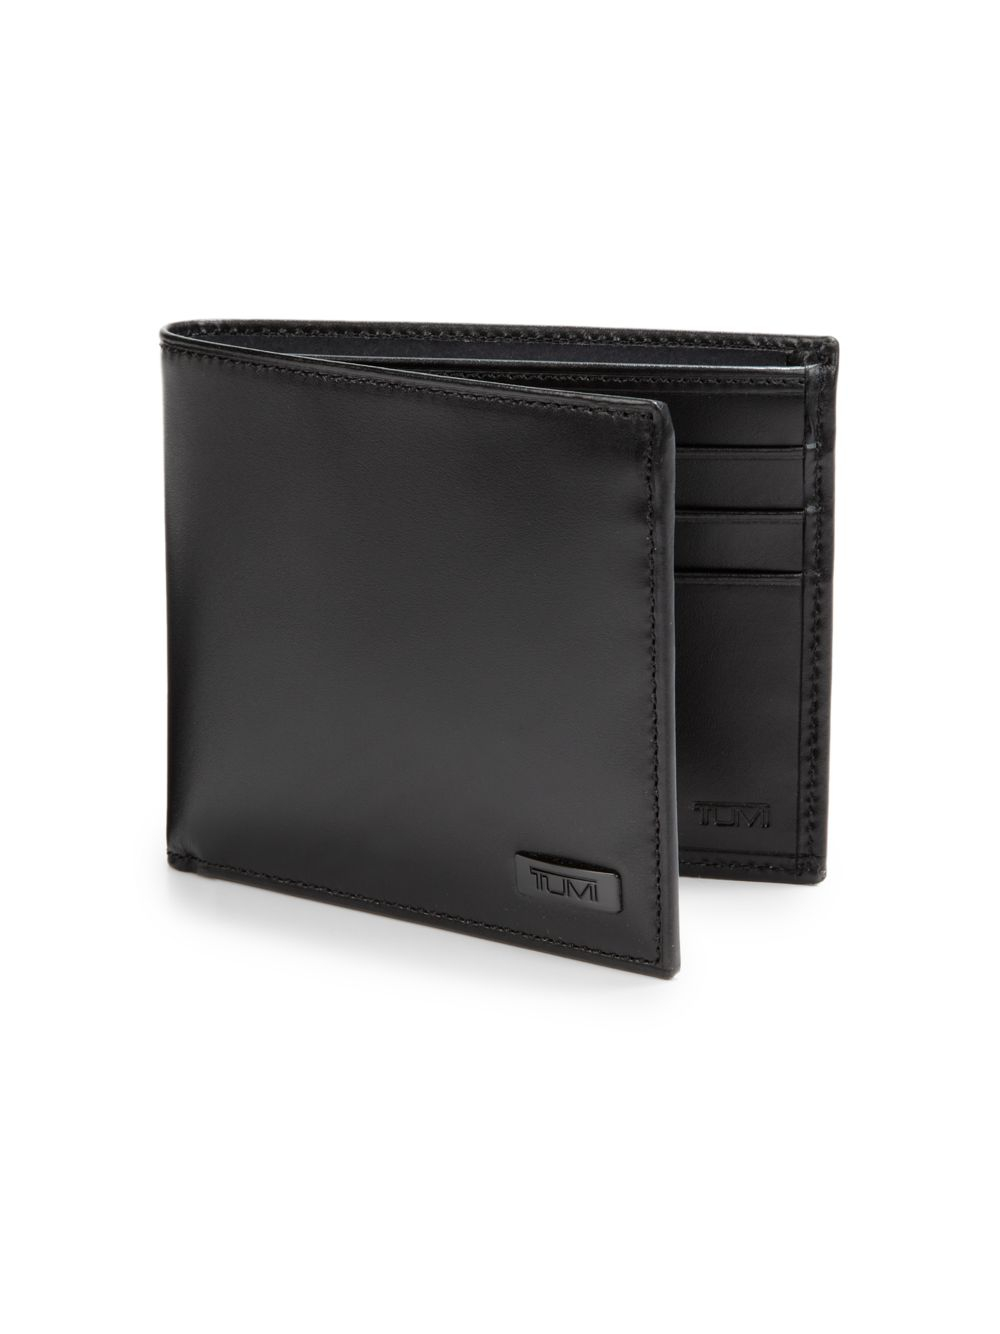 Tumi Horizon Double Billfold Leather Wallet In Black For